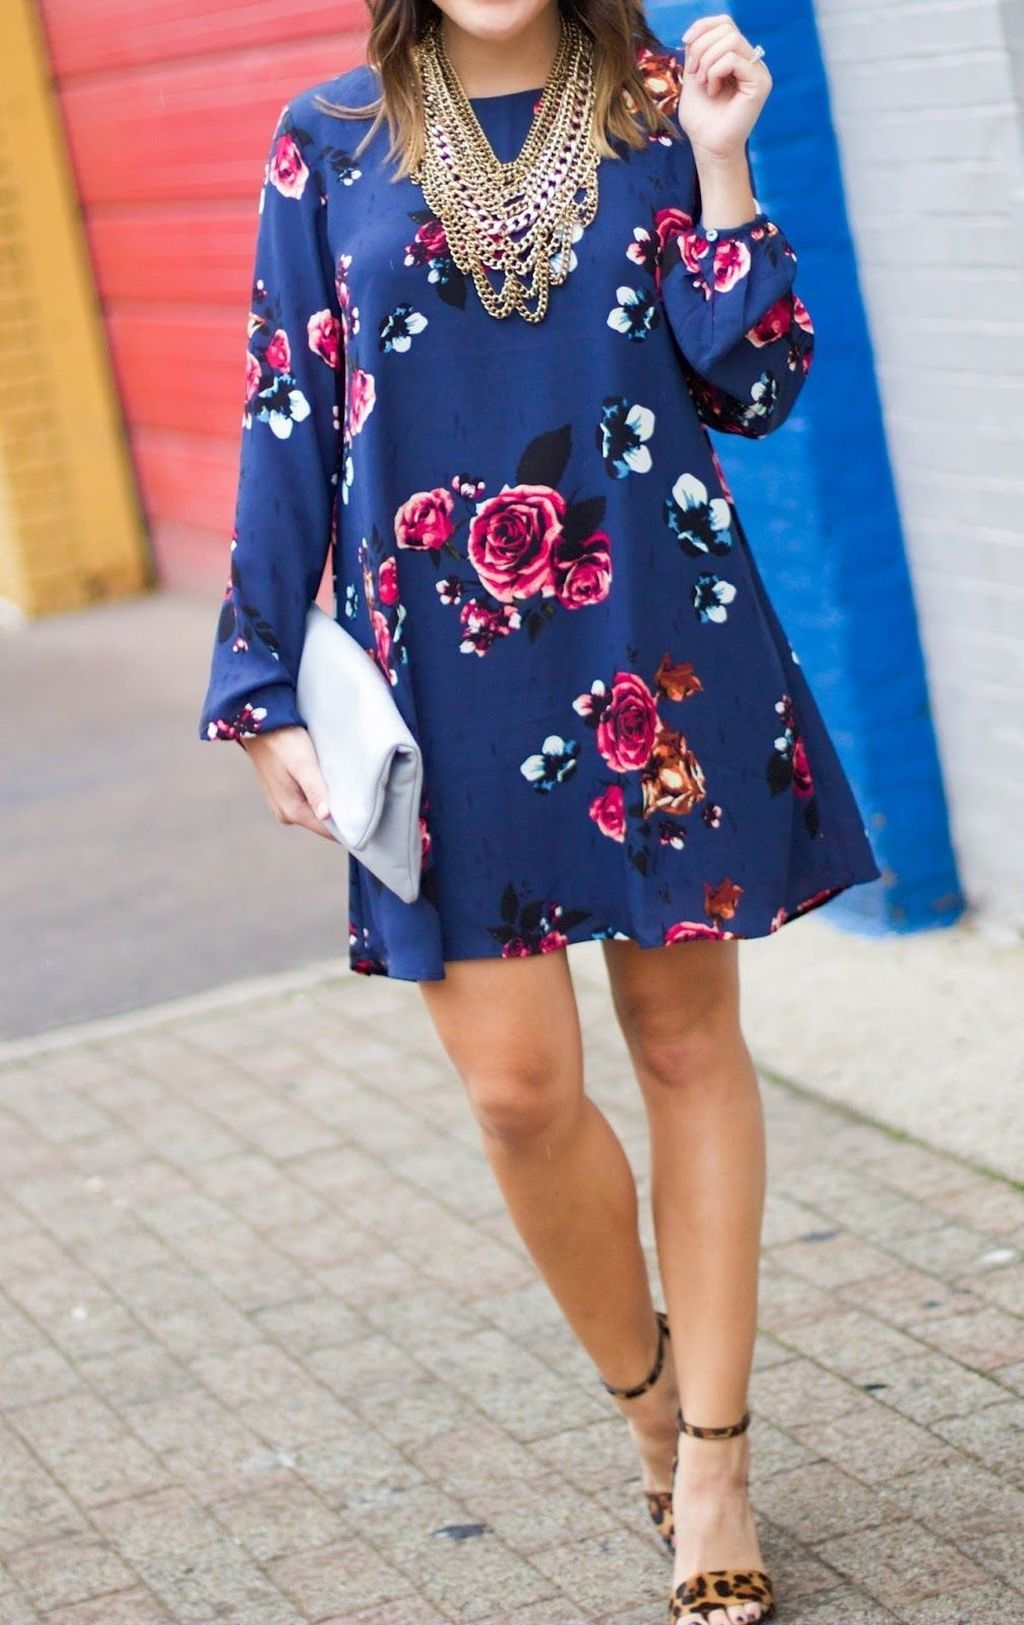 Dresses to wear to a fall wedding for a guest   The Best Fall Dresses Ideas To Wear To A Wedding  Zachary